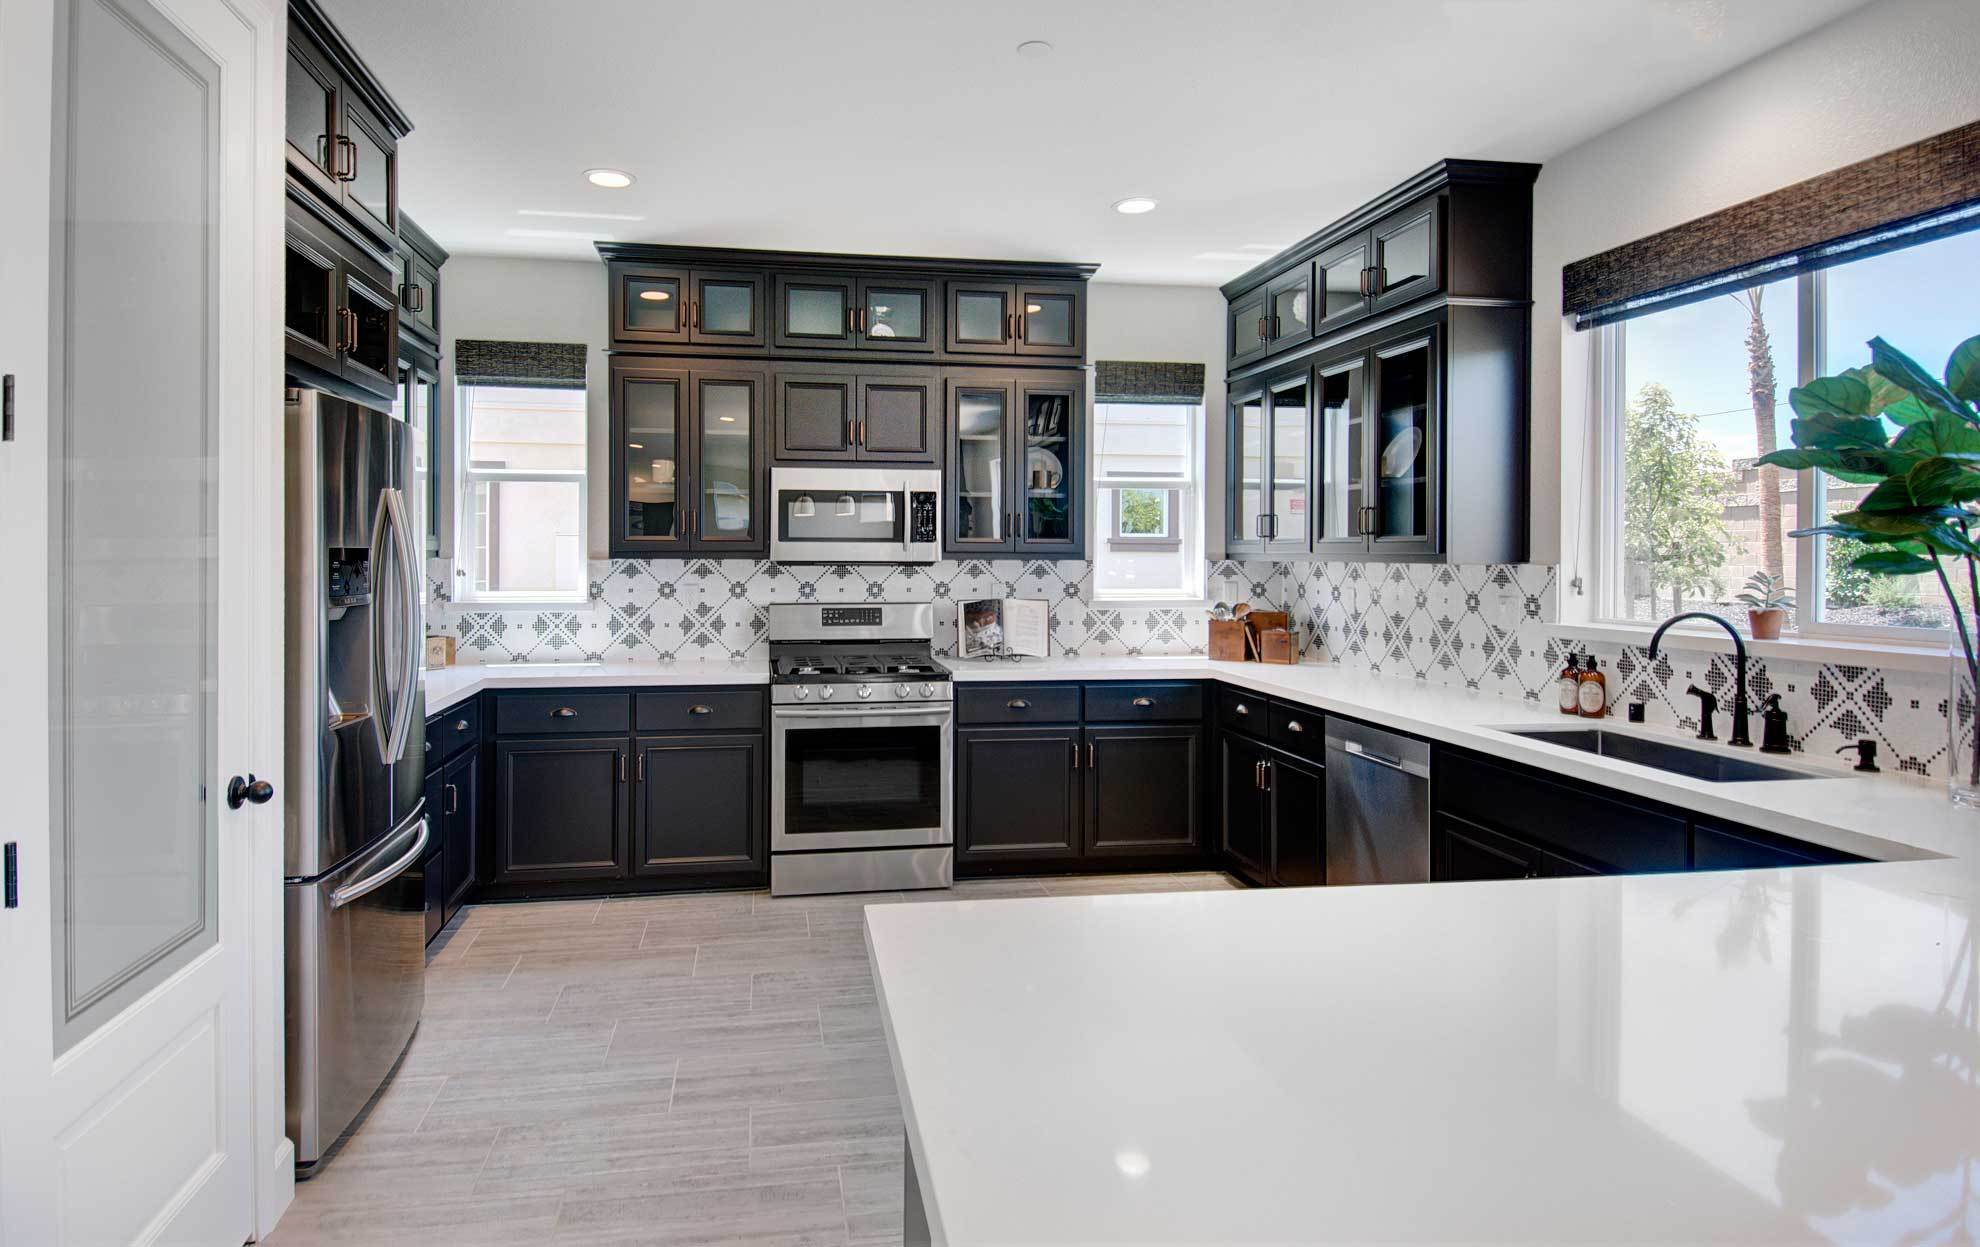 Kitchen featured in the Bordeaux By Seeno Homes in Oakland-Alameda, CA